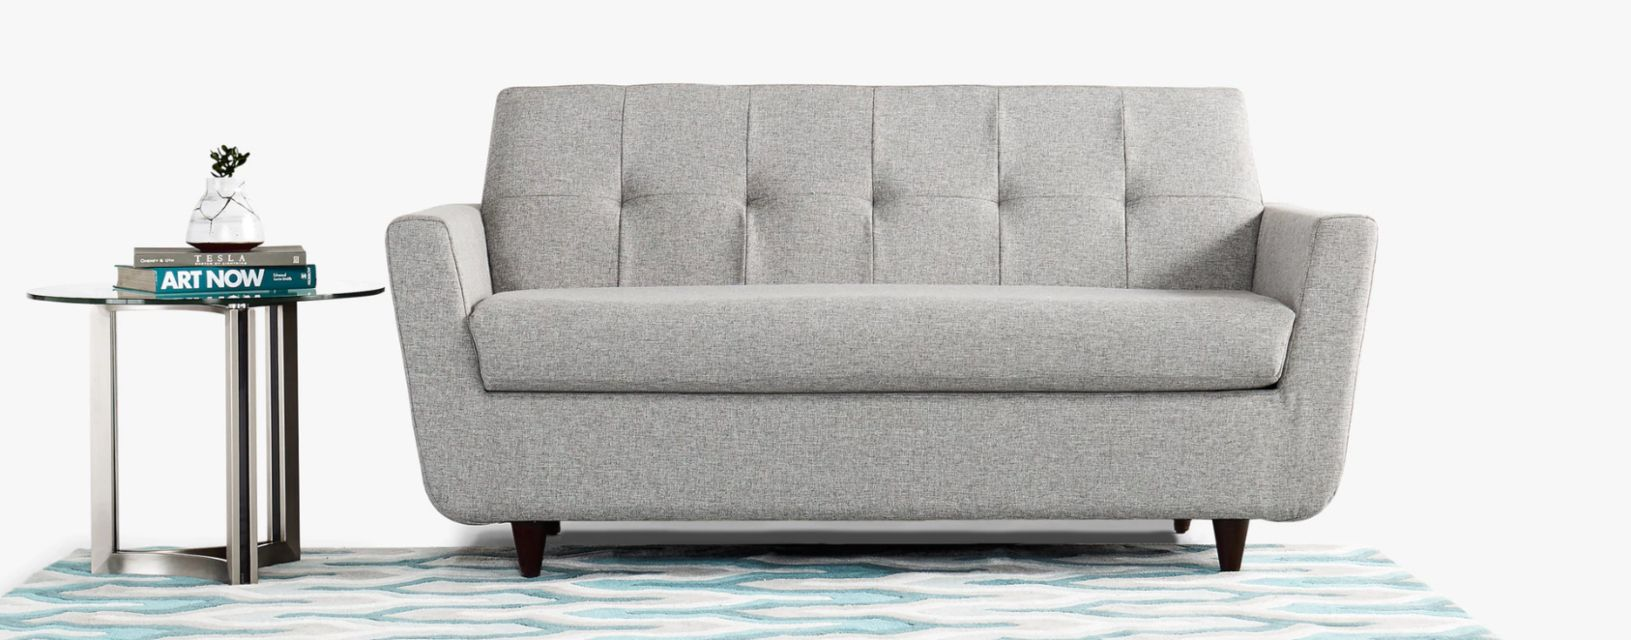 The 8 Best Small Sleeper Sofas of 2019